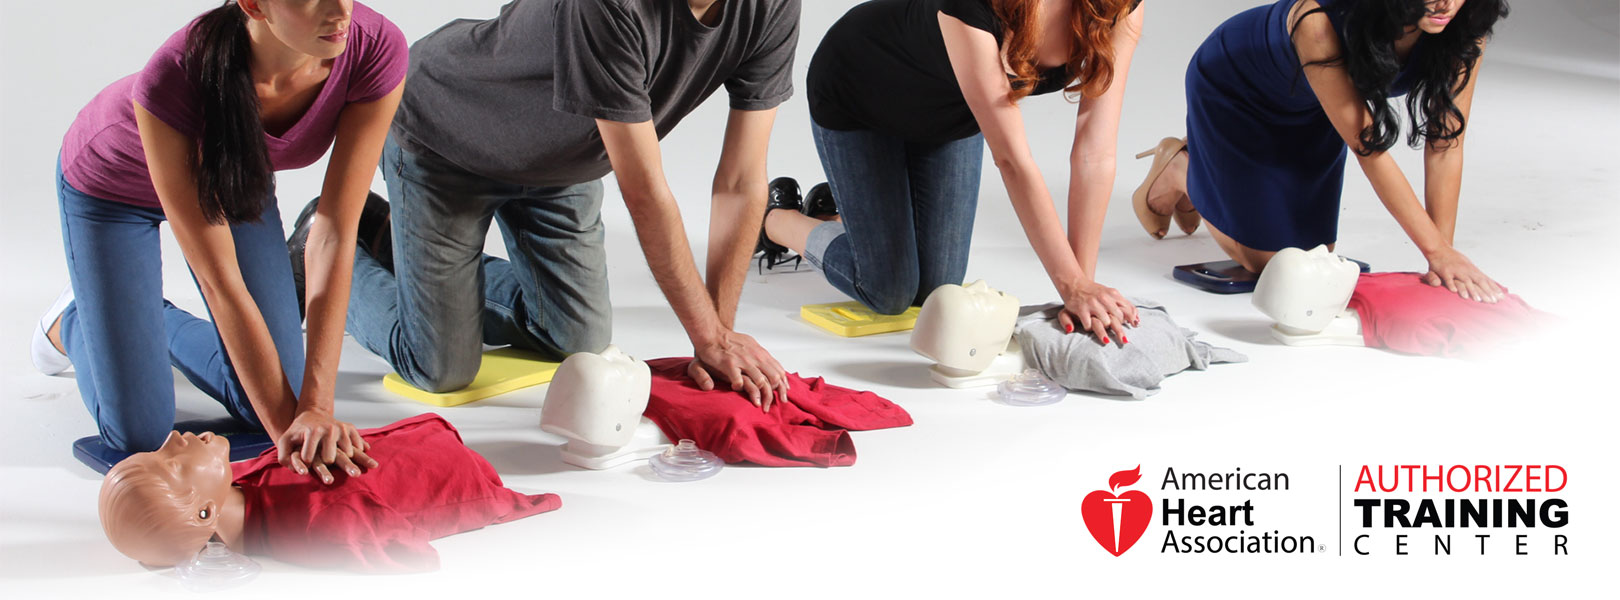 Cpr And First Aid Classes Lifesavers First Aid Lifesavers Inc